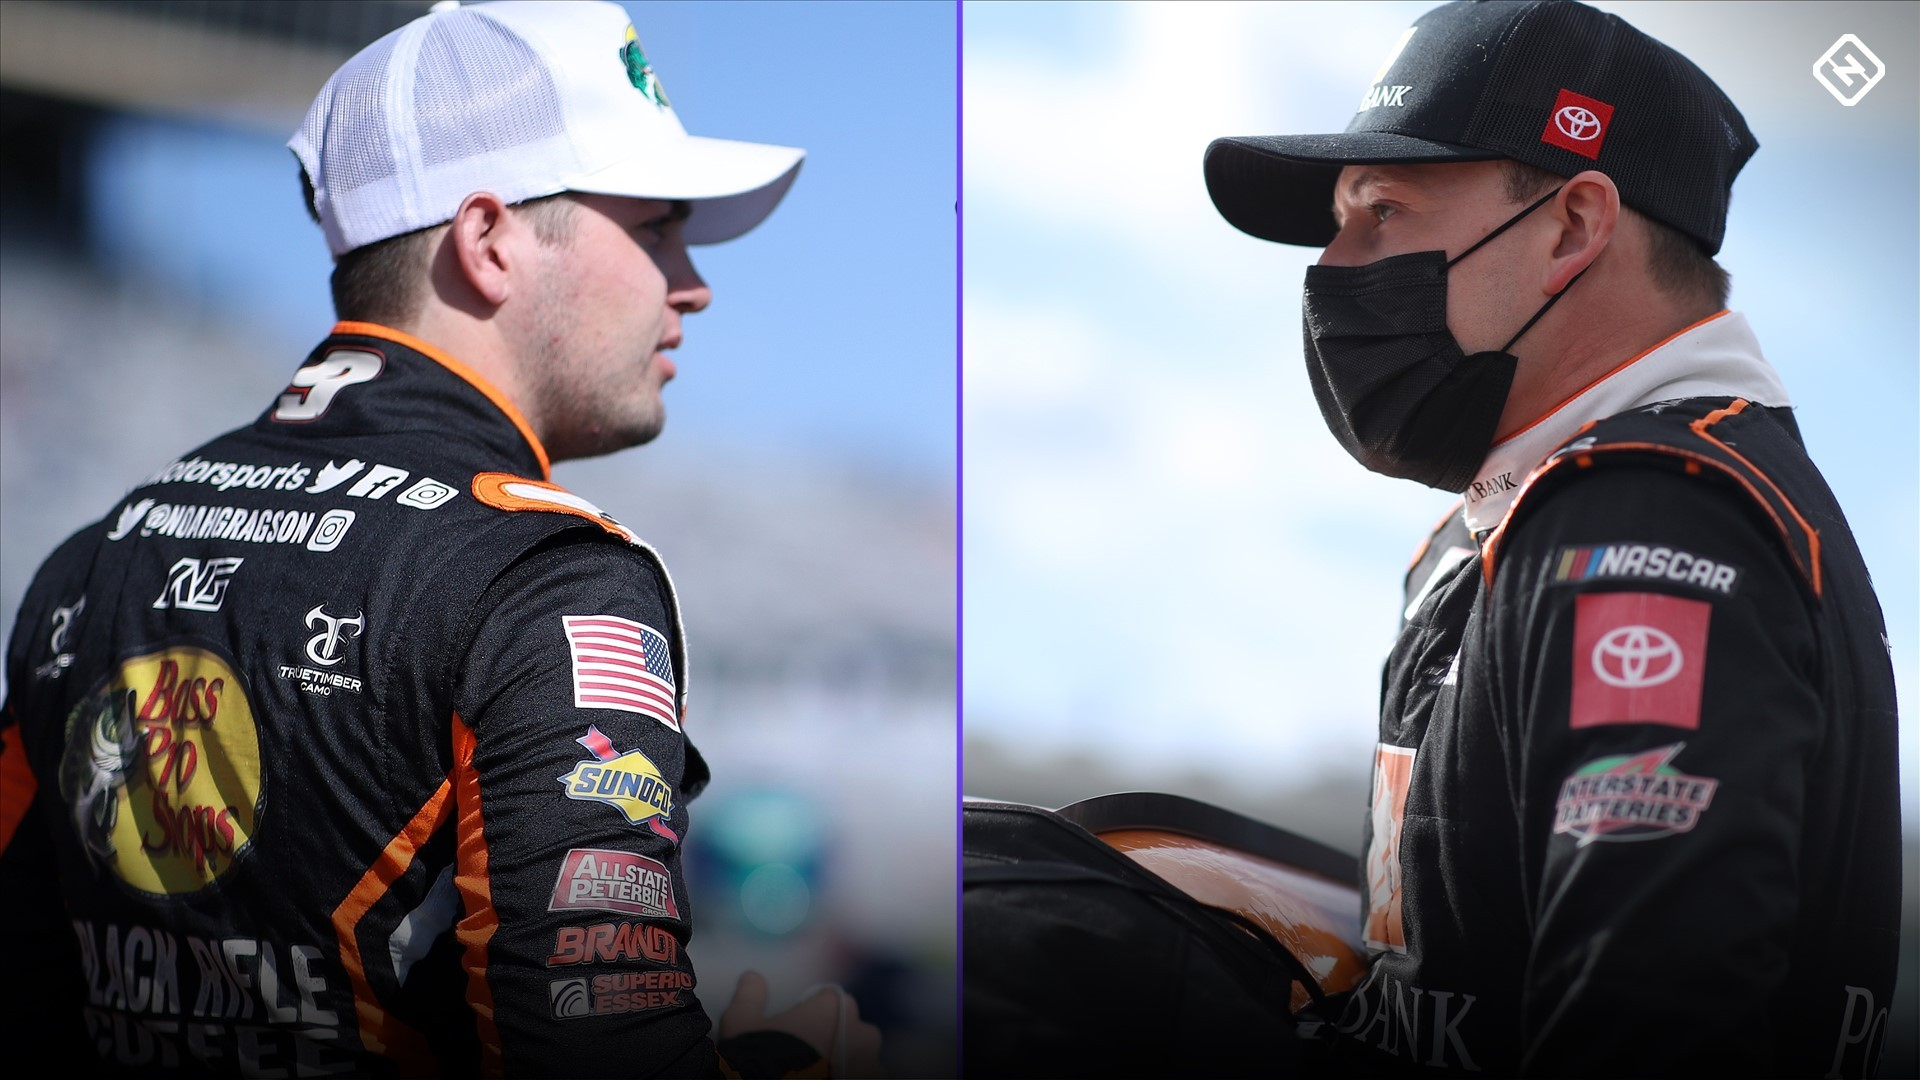 Noah Gragson and Daniel Hemric clash in the pit road after the NASCAR Xfinity race